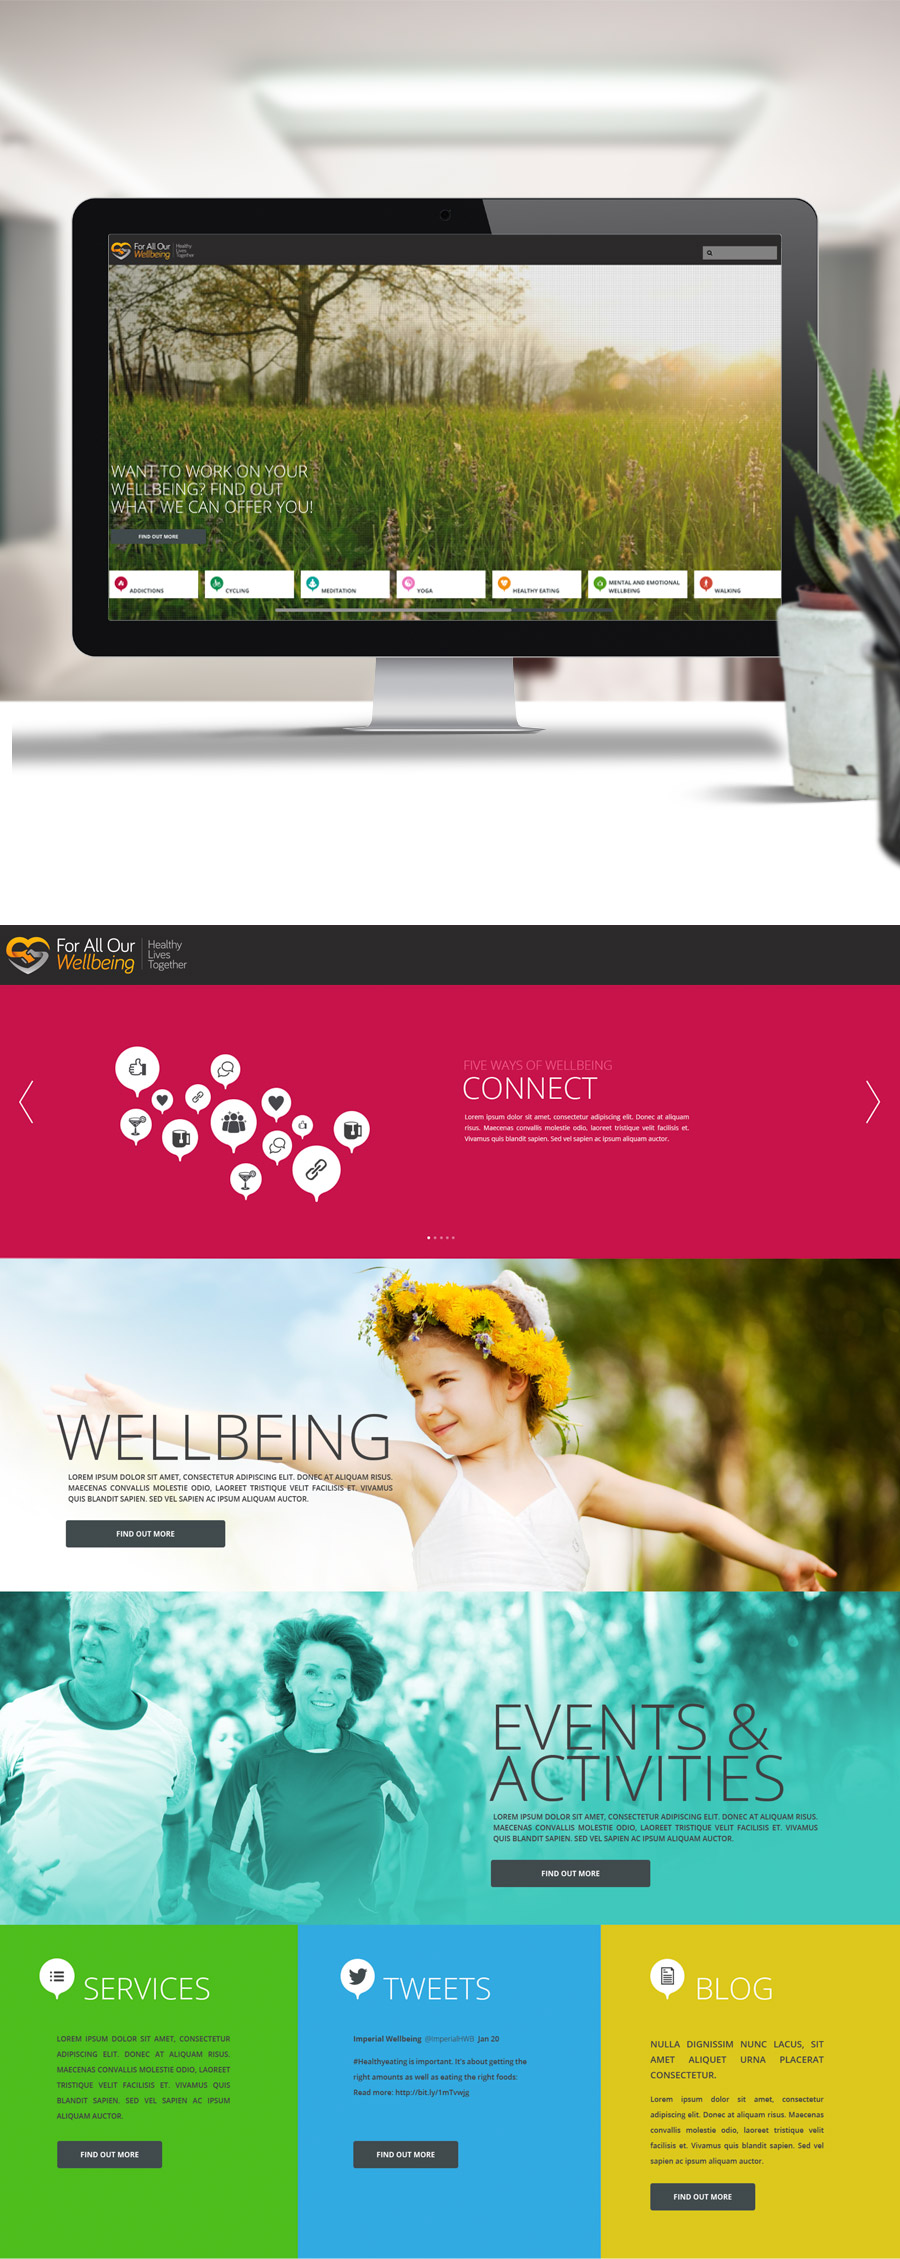 wellbeing-website-01